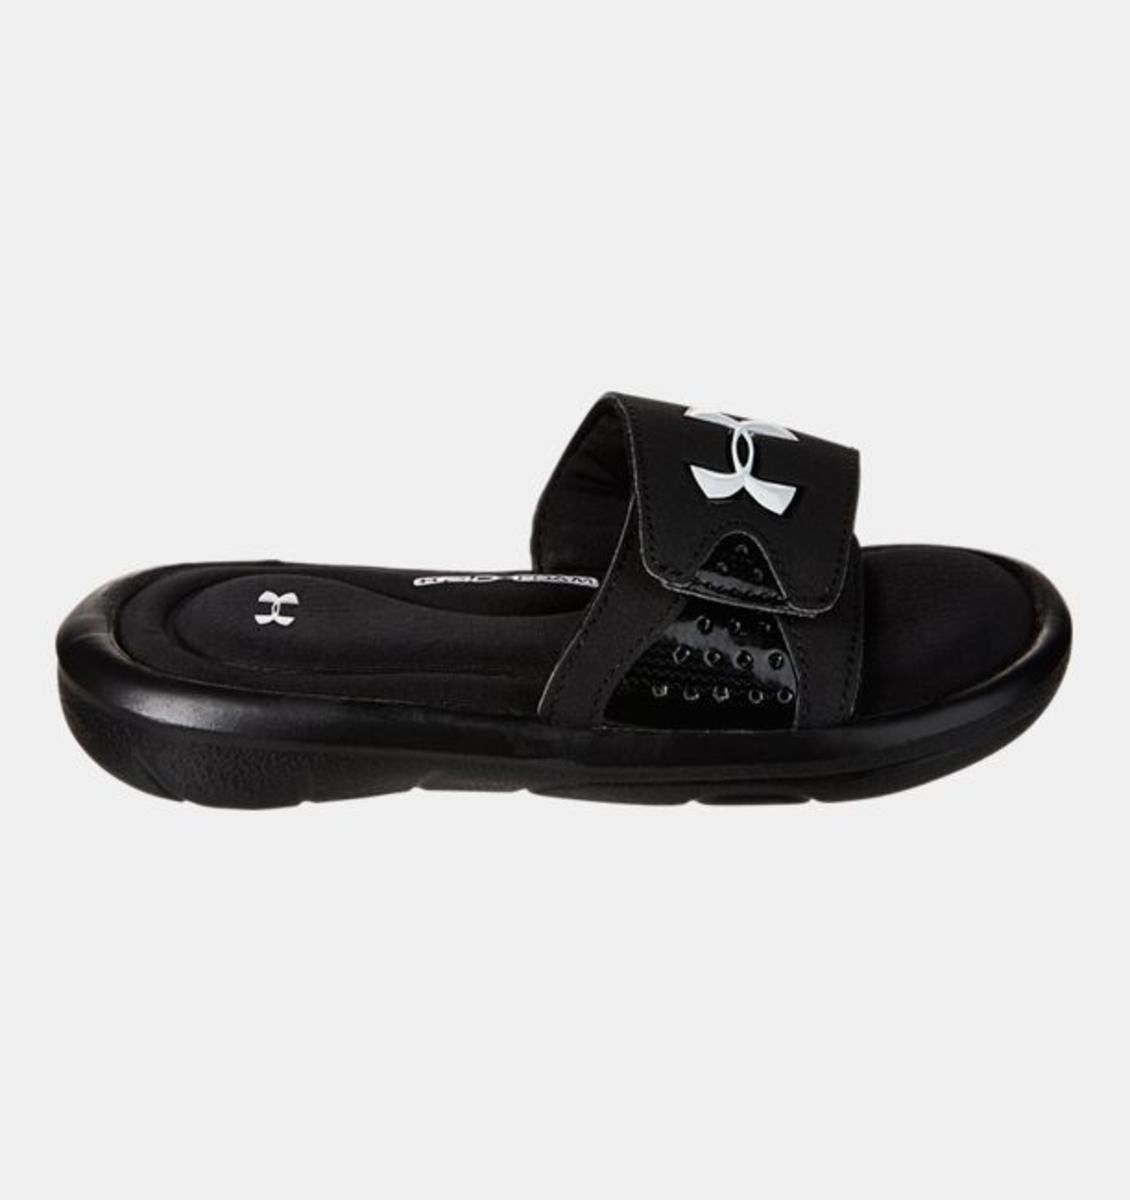 c7175c03898 Under Armour Boy s UA Ignite Slides - The Warming Store